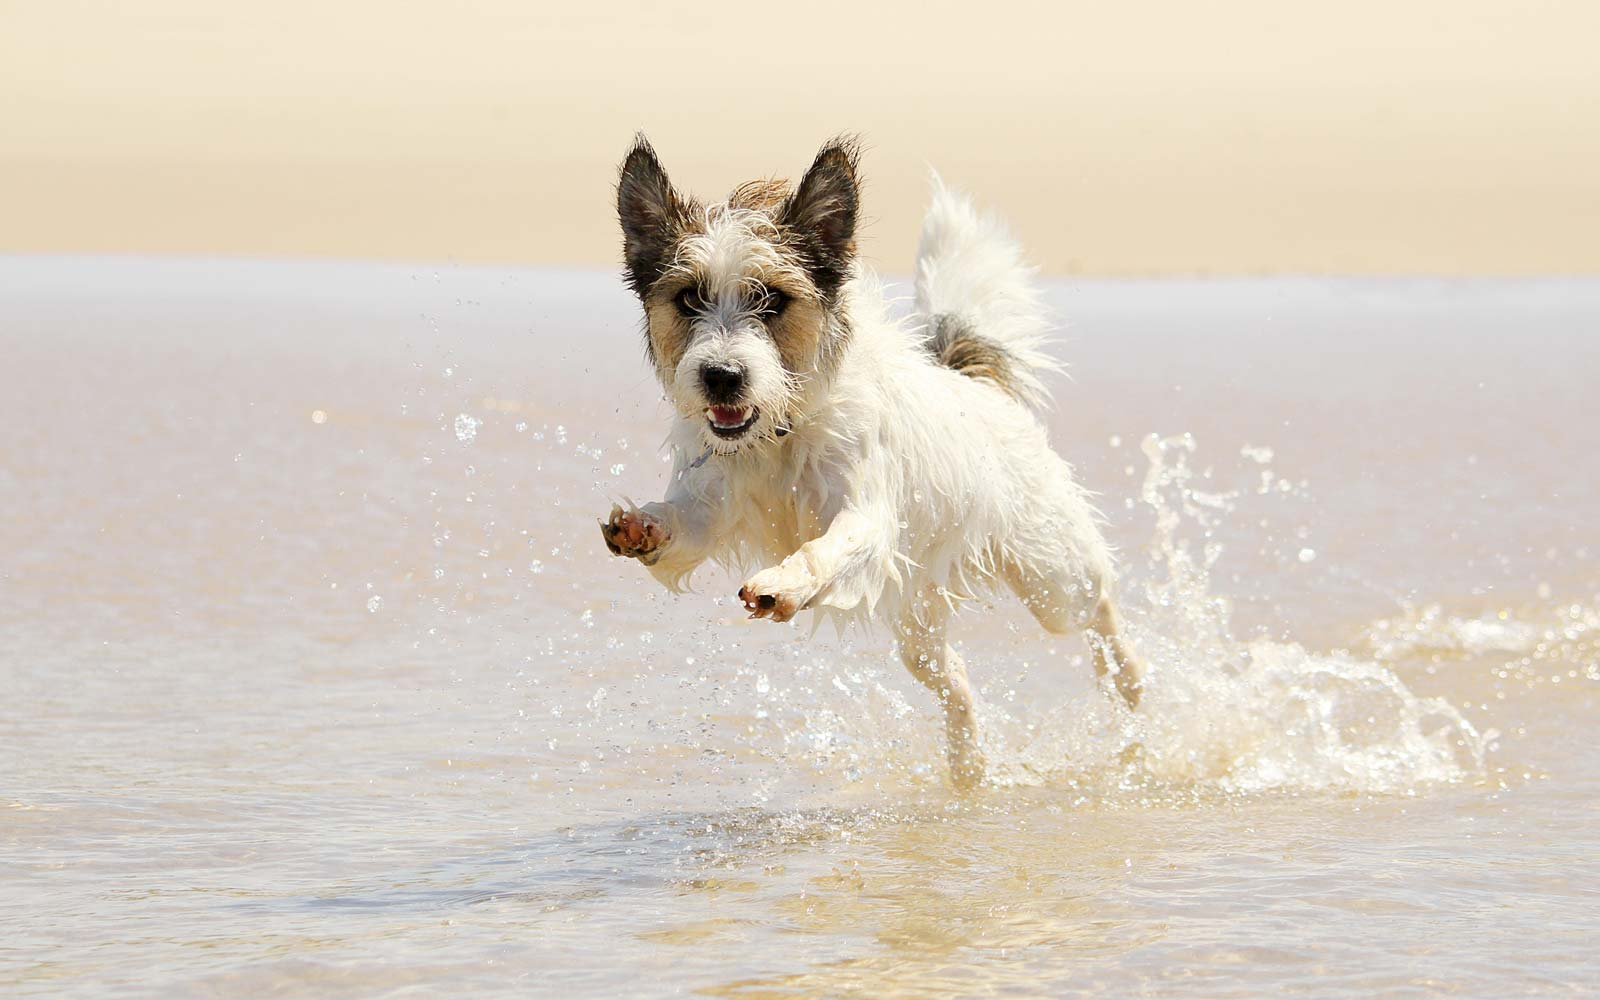 Best Dog-friendly Beaches in the U.S.